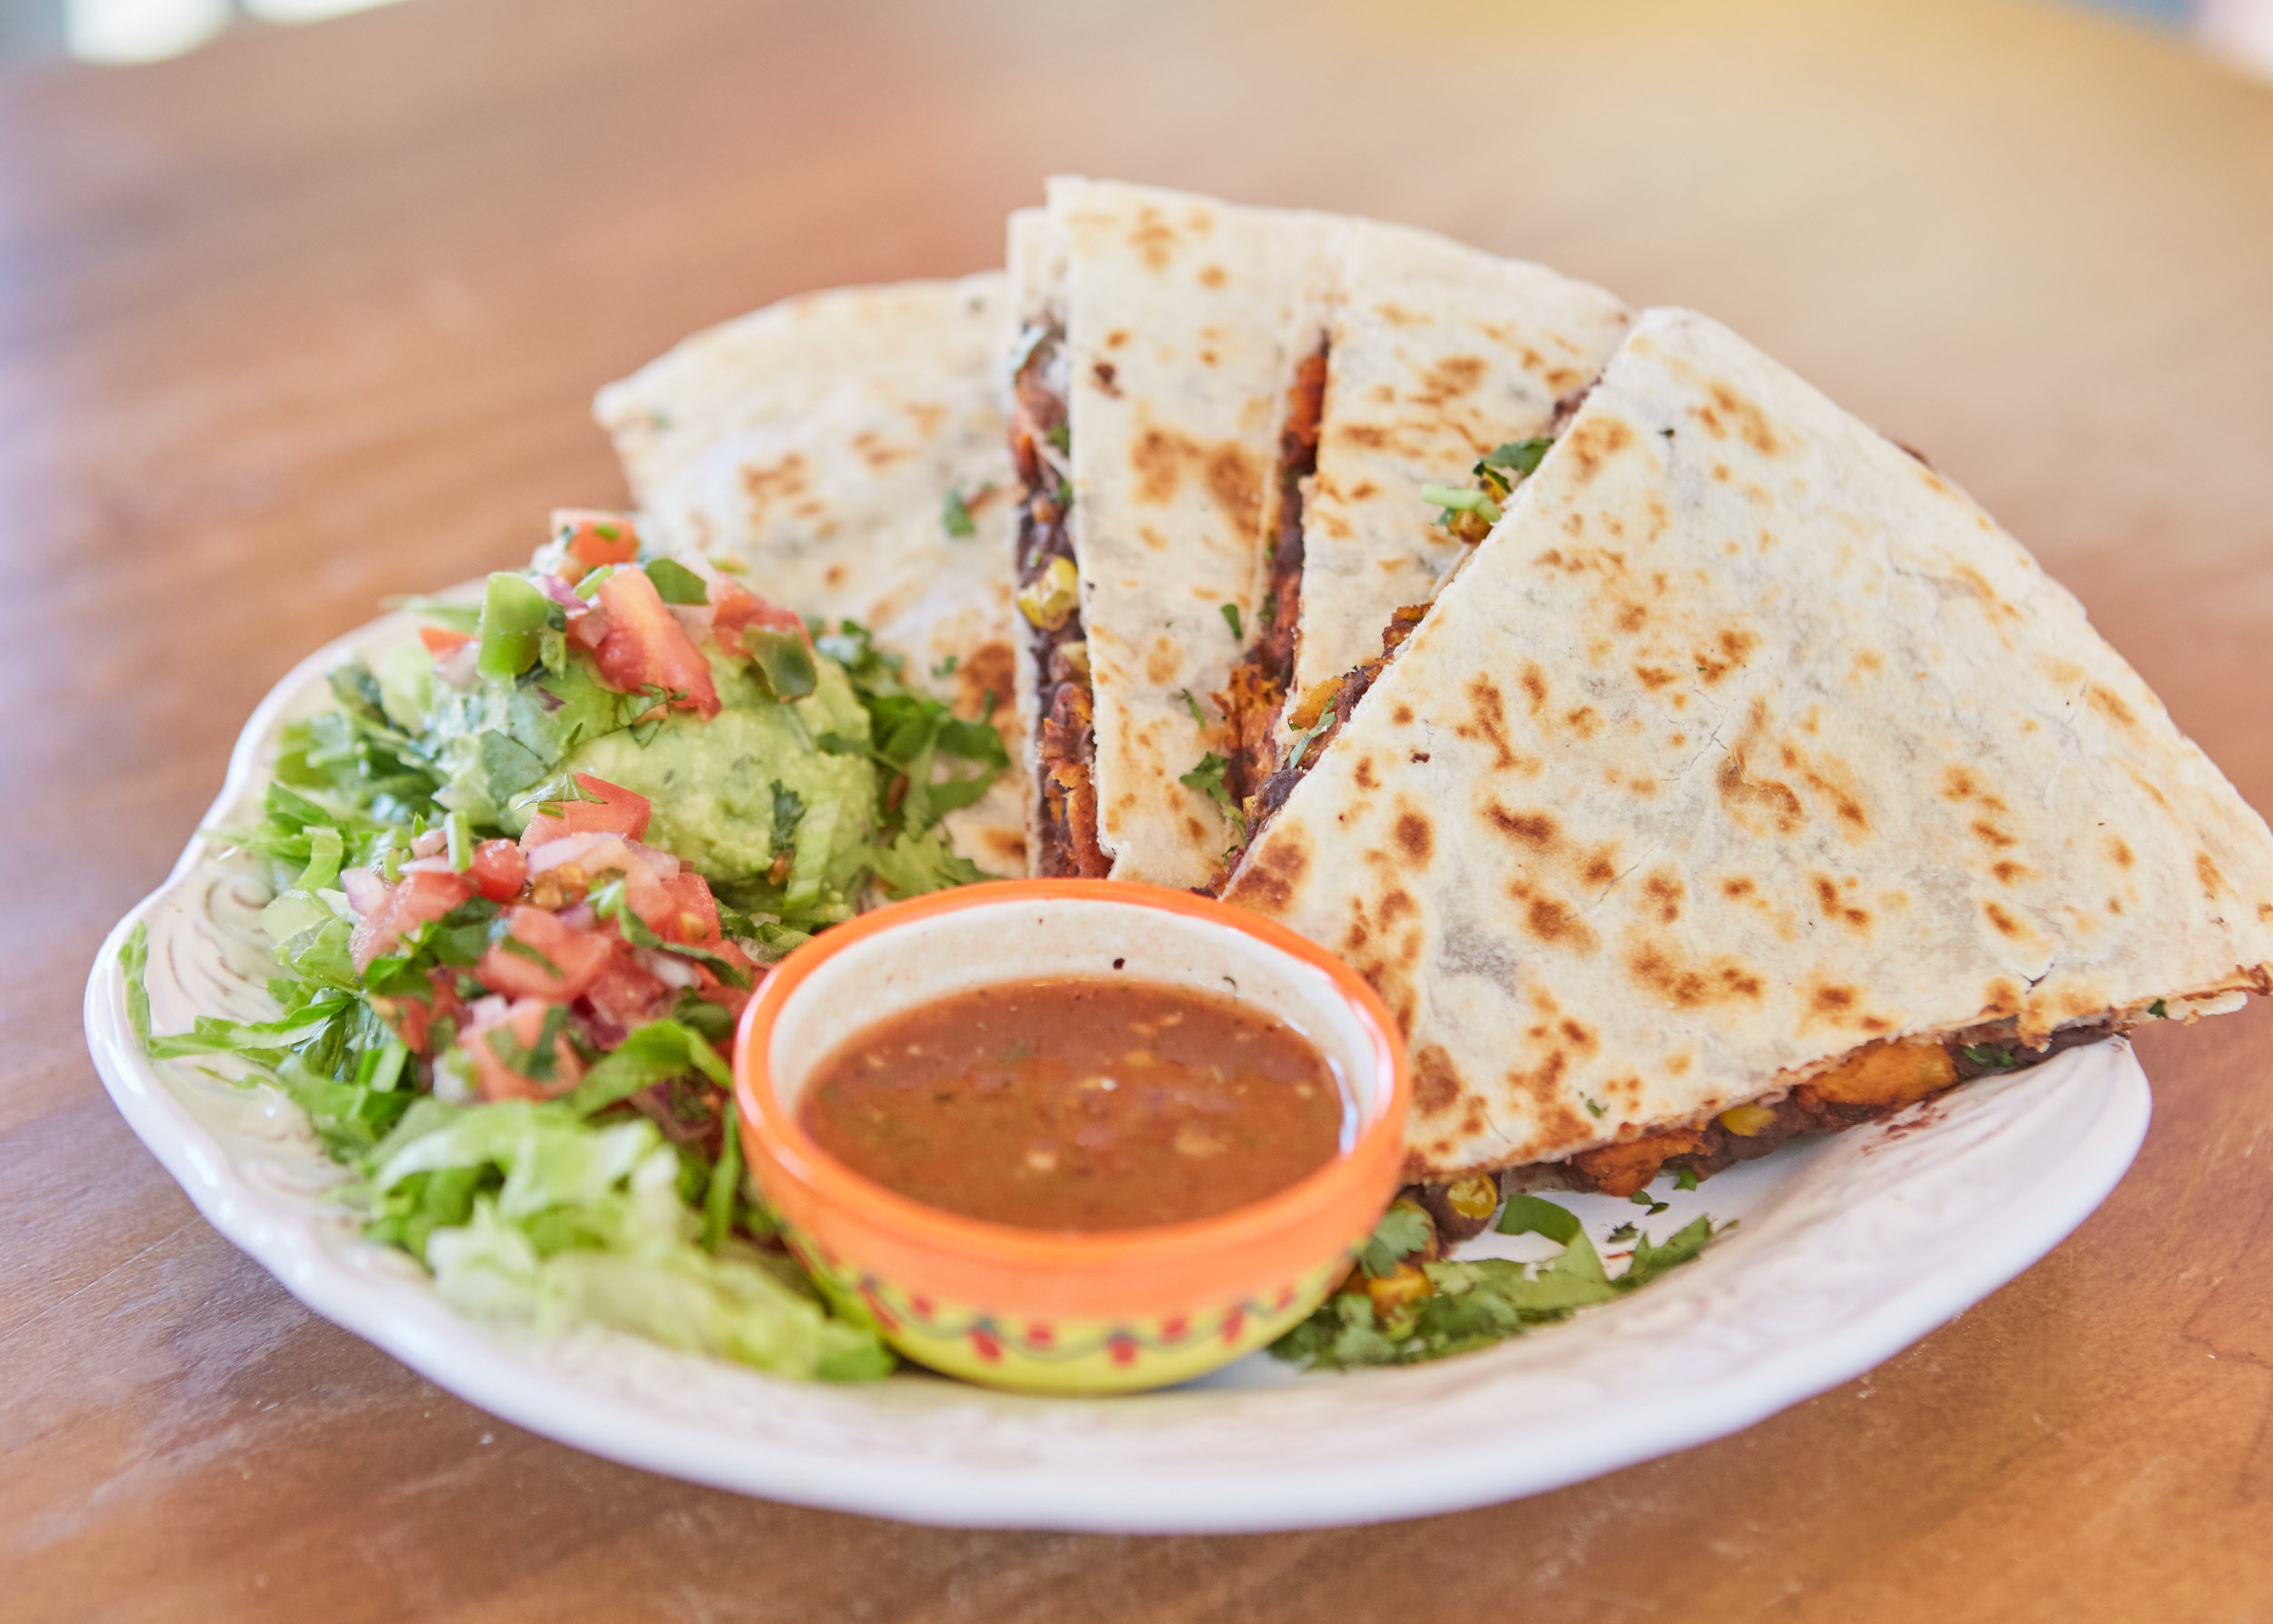 QUESADILLAS $8.99 - SPICY CHICKEN Roasted corn, cilantro, chipotle cremaBEEF OR CHICKEN FAJITA Citrus-marinated beef or chicken, plain or dribbled with citrus habaneroSPINACH & BLACK BEAN (V) Black beans, spinach, roasted corn, poblanos, red bell peppers and zucchini (Veggie)SWEET POTATOES & BLACK BEAN (VEGAN) No cheese –– Black bean spread, sweet potatoes, roasted corn and cilantro topped with guajillo-tamarind drizzle